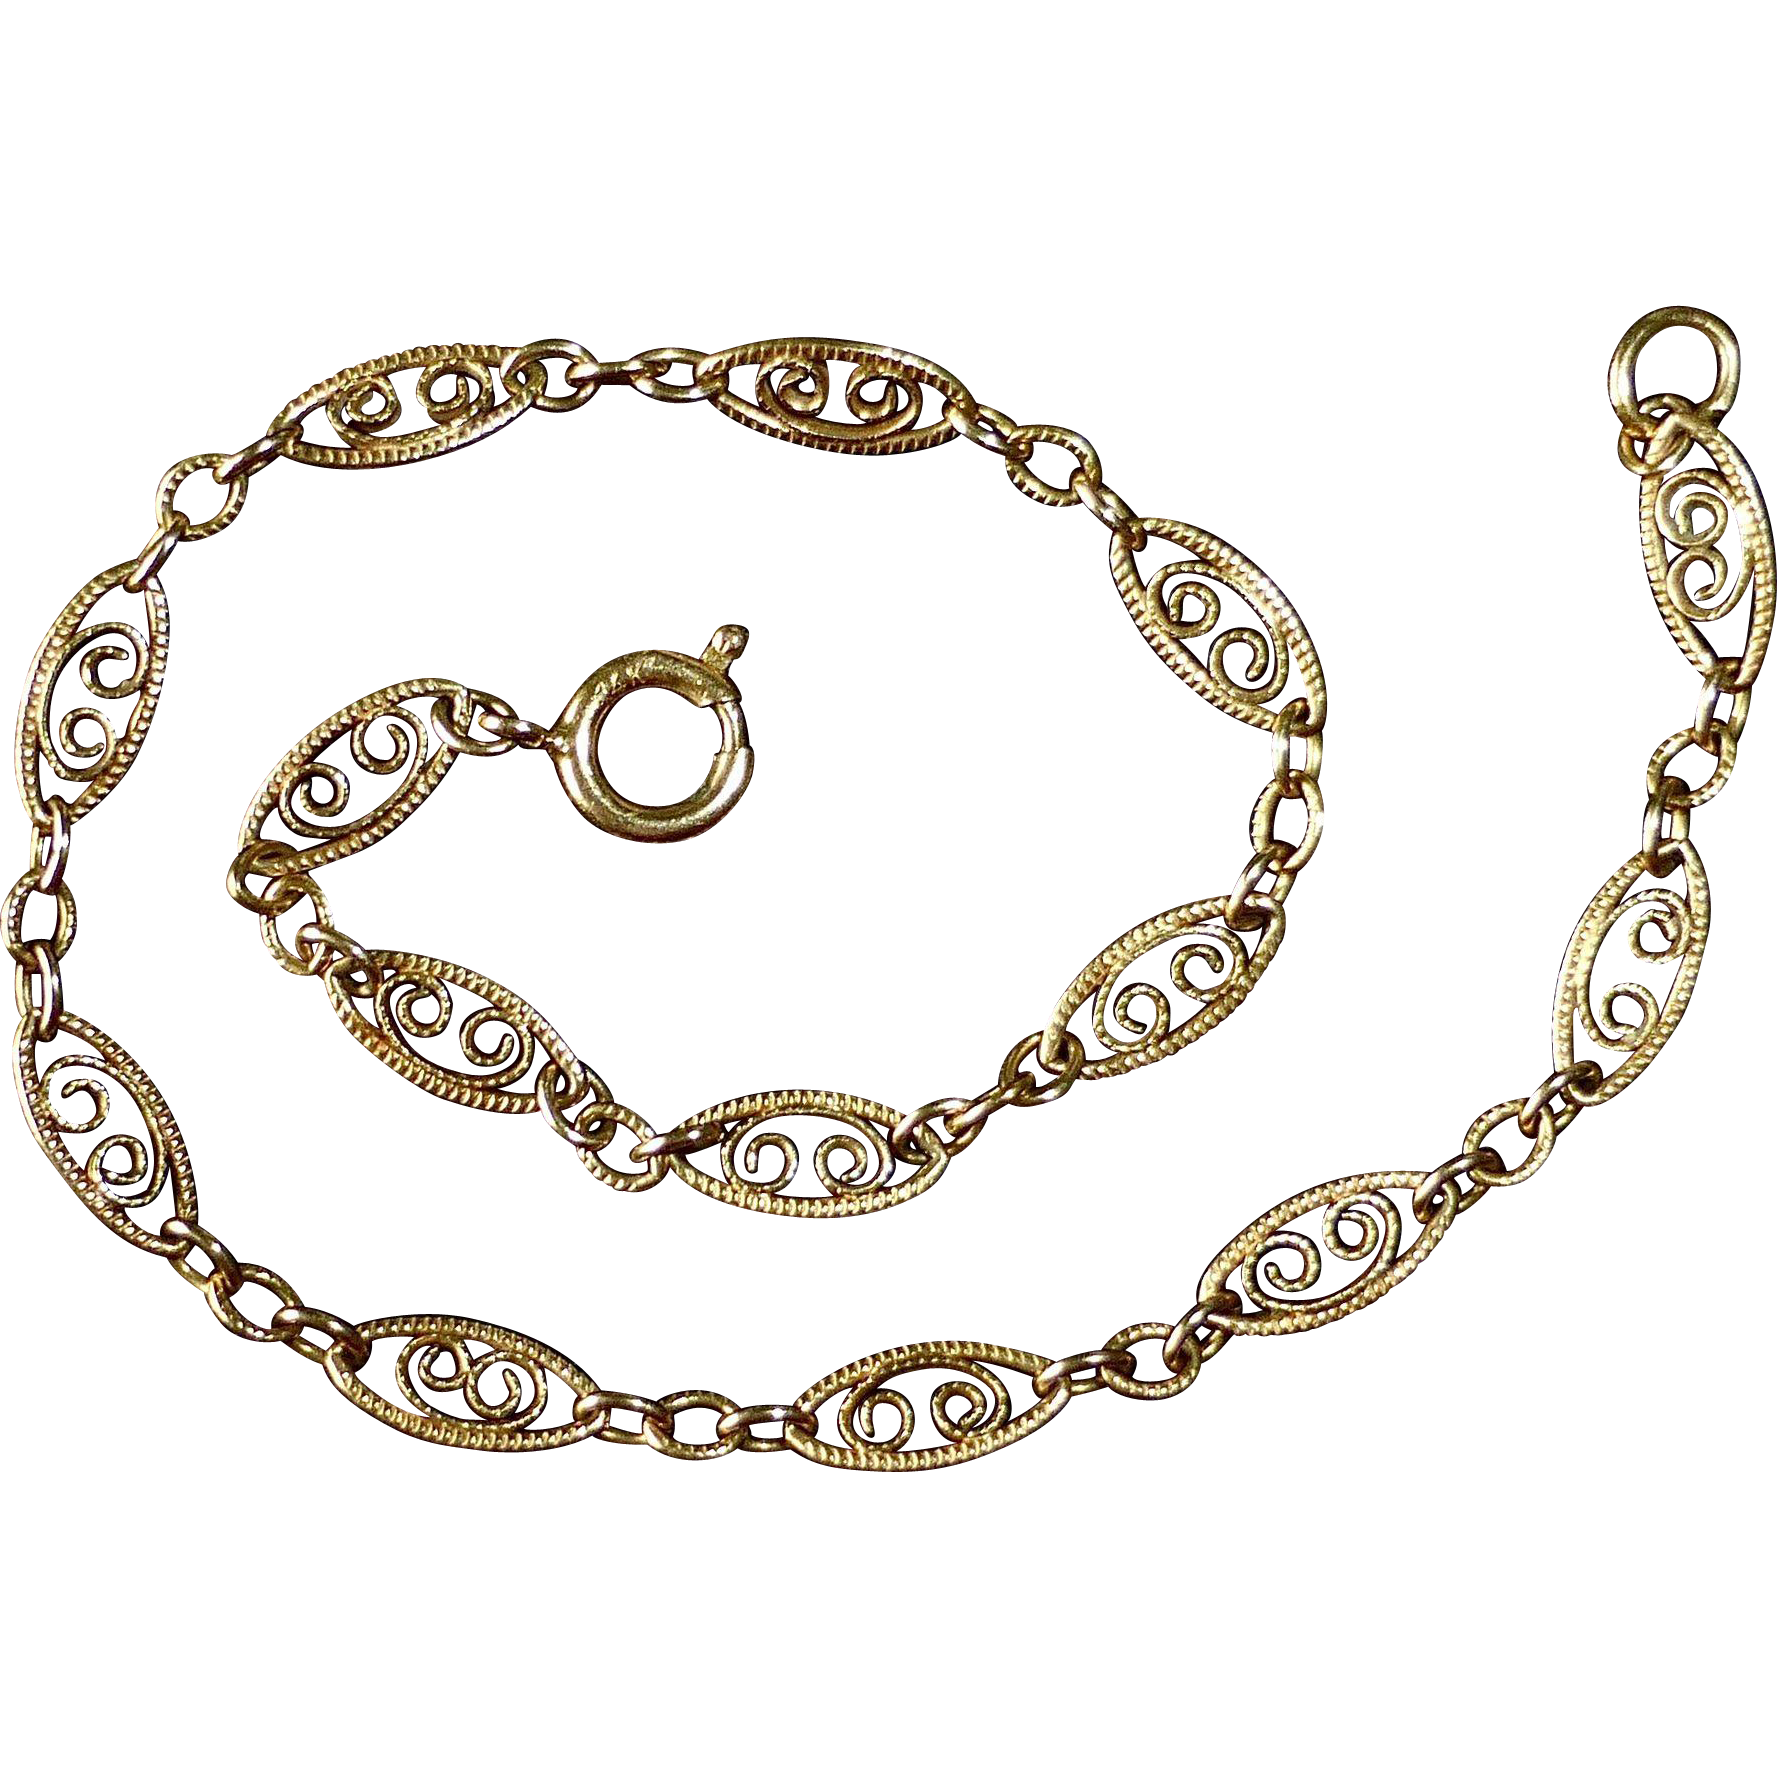 14k Yellow Gold Filigree Chain Bracelet